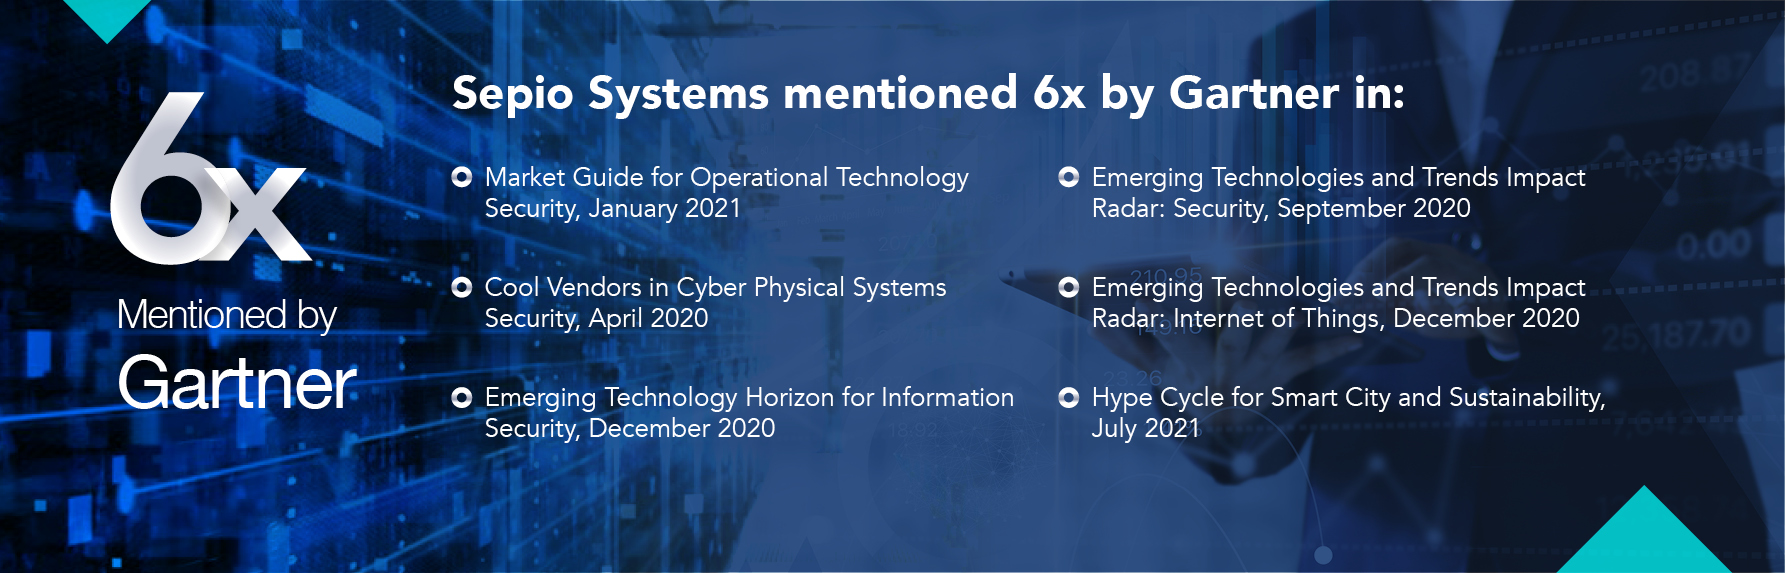 Sepio Systems mentioned by Gartner